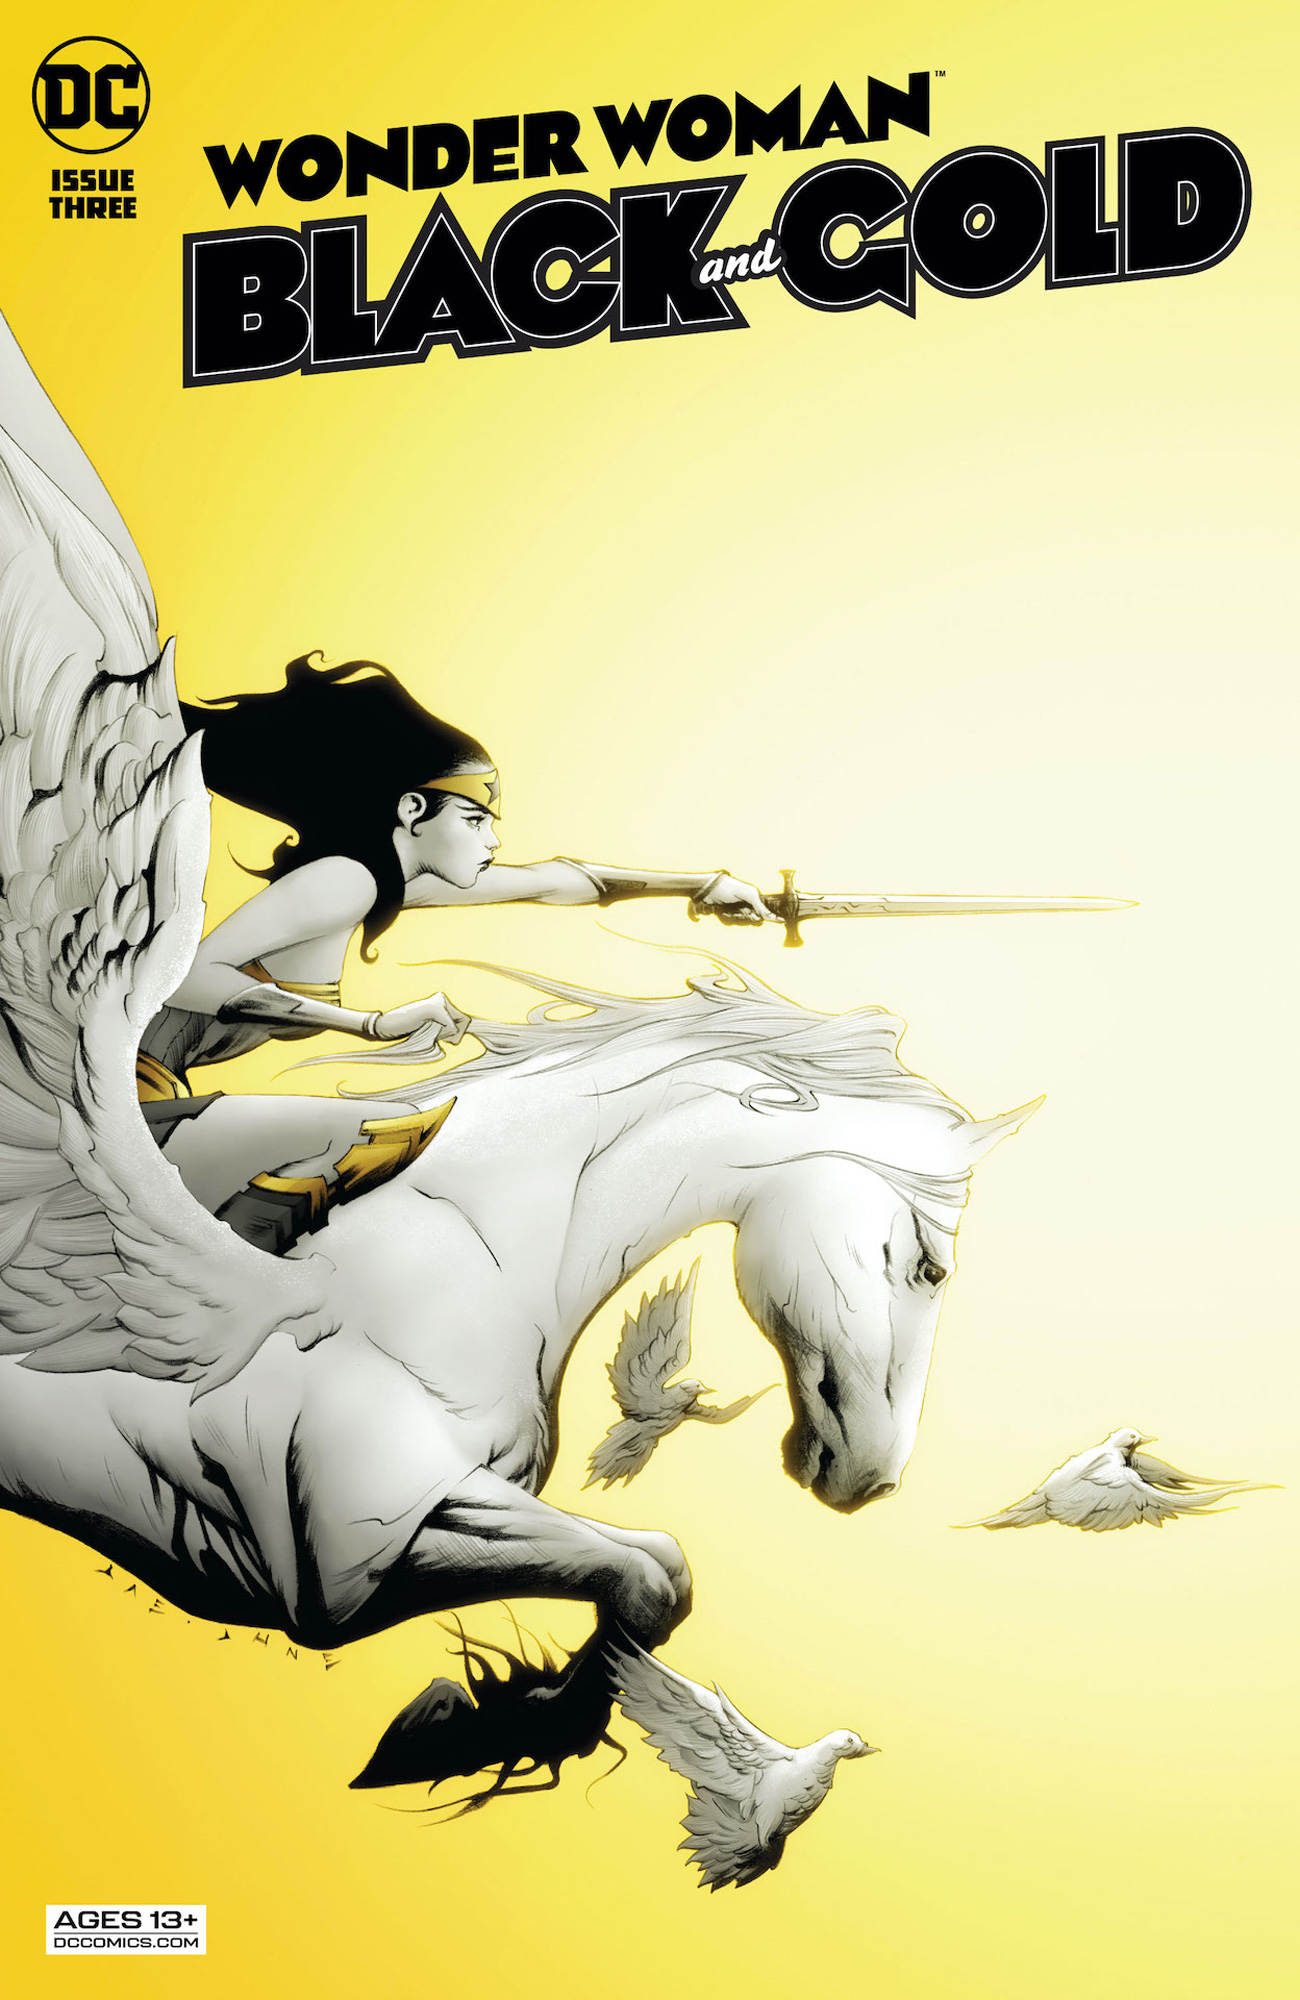 a0003_wonder-woman-black-and-gold_cover01